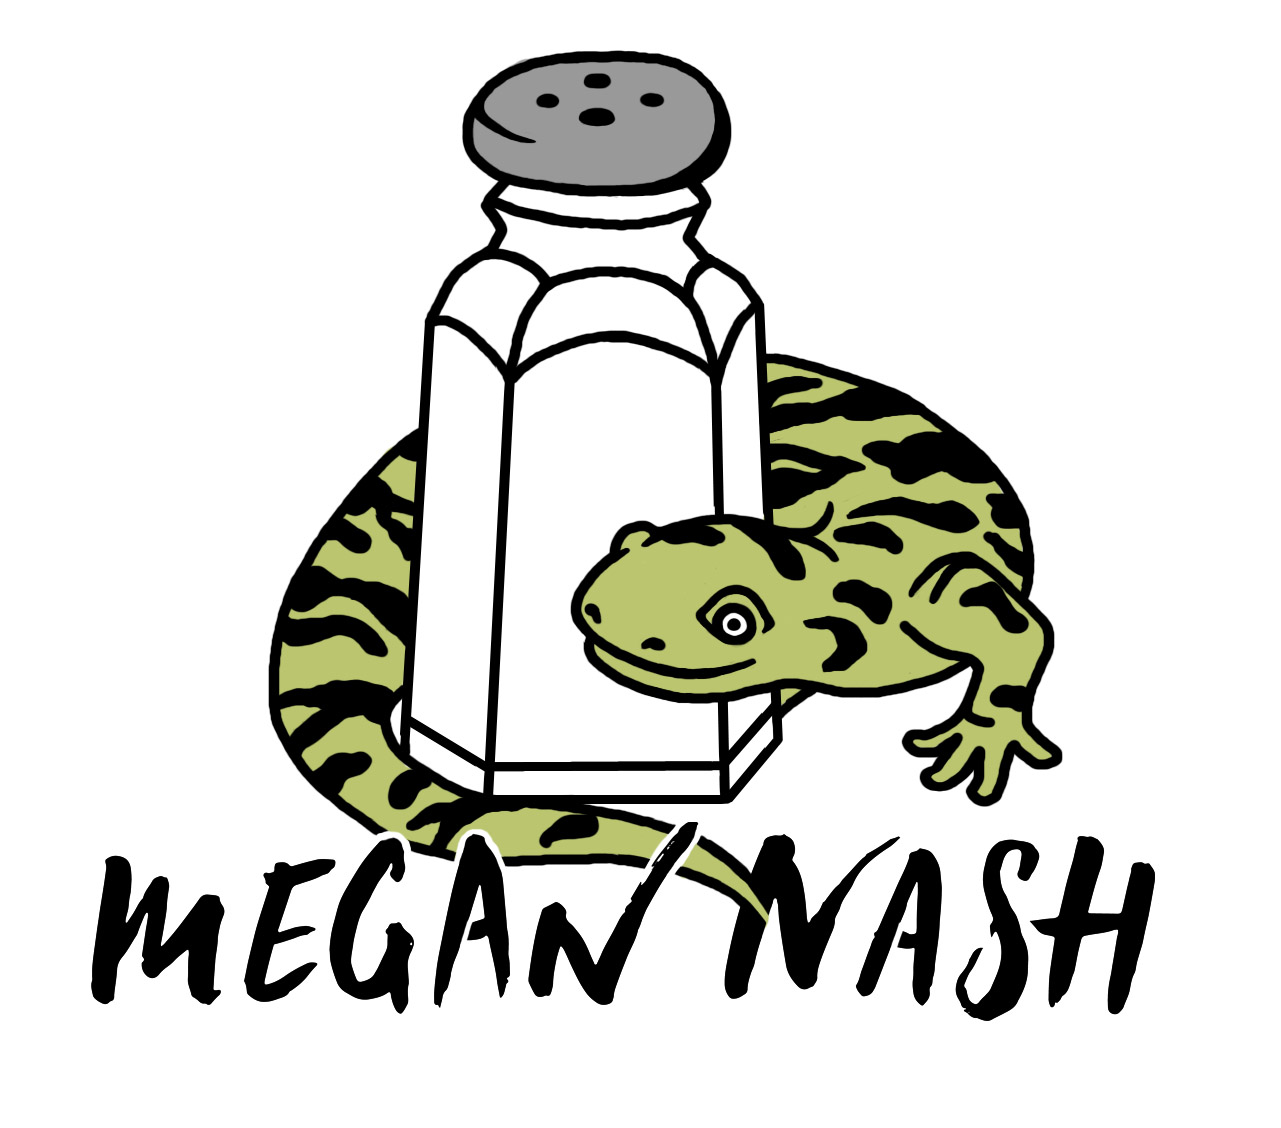 Megan Nash Salted Salamander Sticker